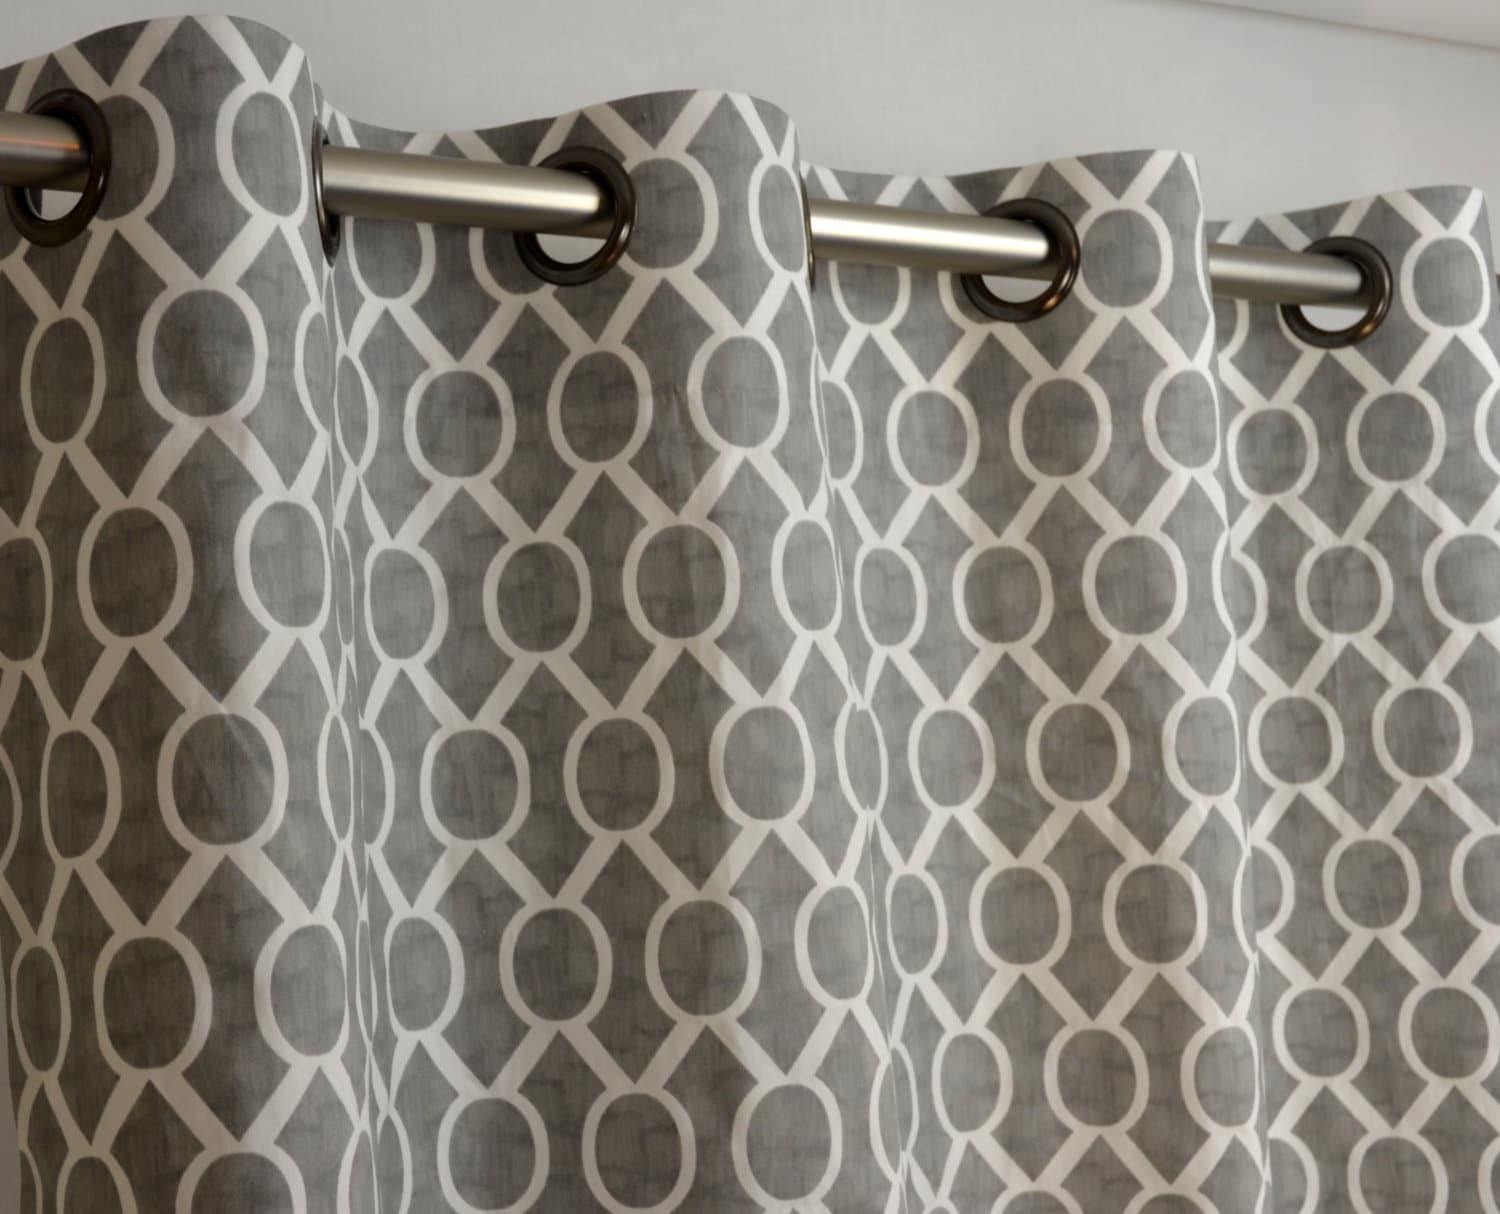 ideas of dollclique inch lovely inches no curtain inspirational melhores ideias com de wide curtains blue pinterest drapes